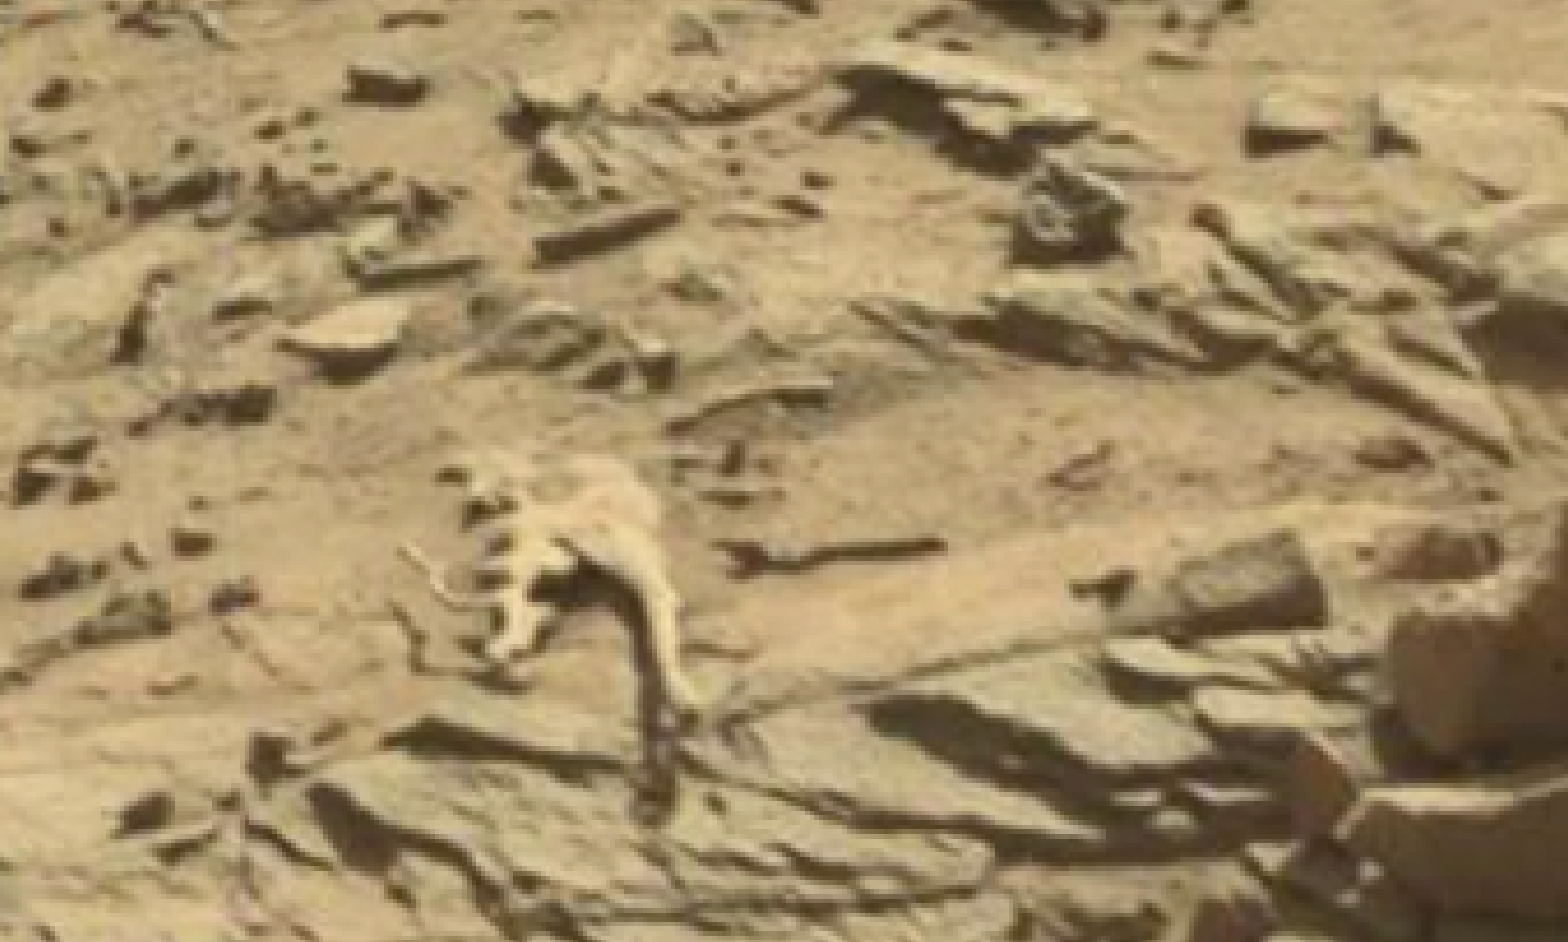 mars sol 1298 anomaly-artifacts 2 was life on mars